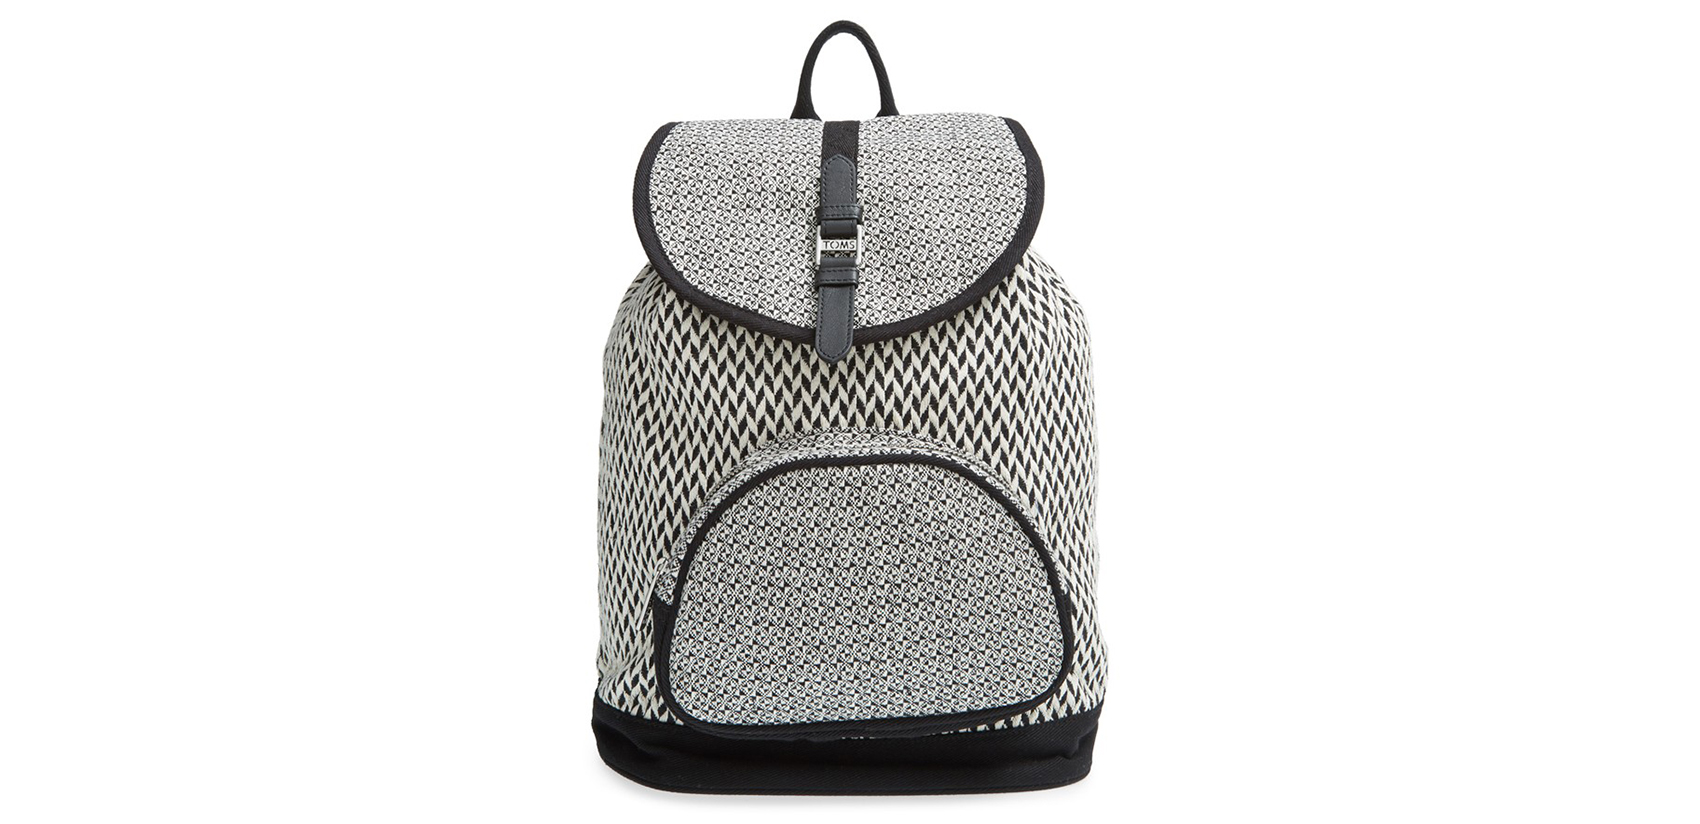 938254a1f0 10 Stylish School Bags for College Students